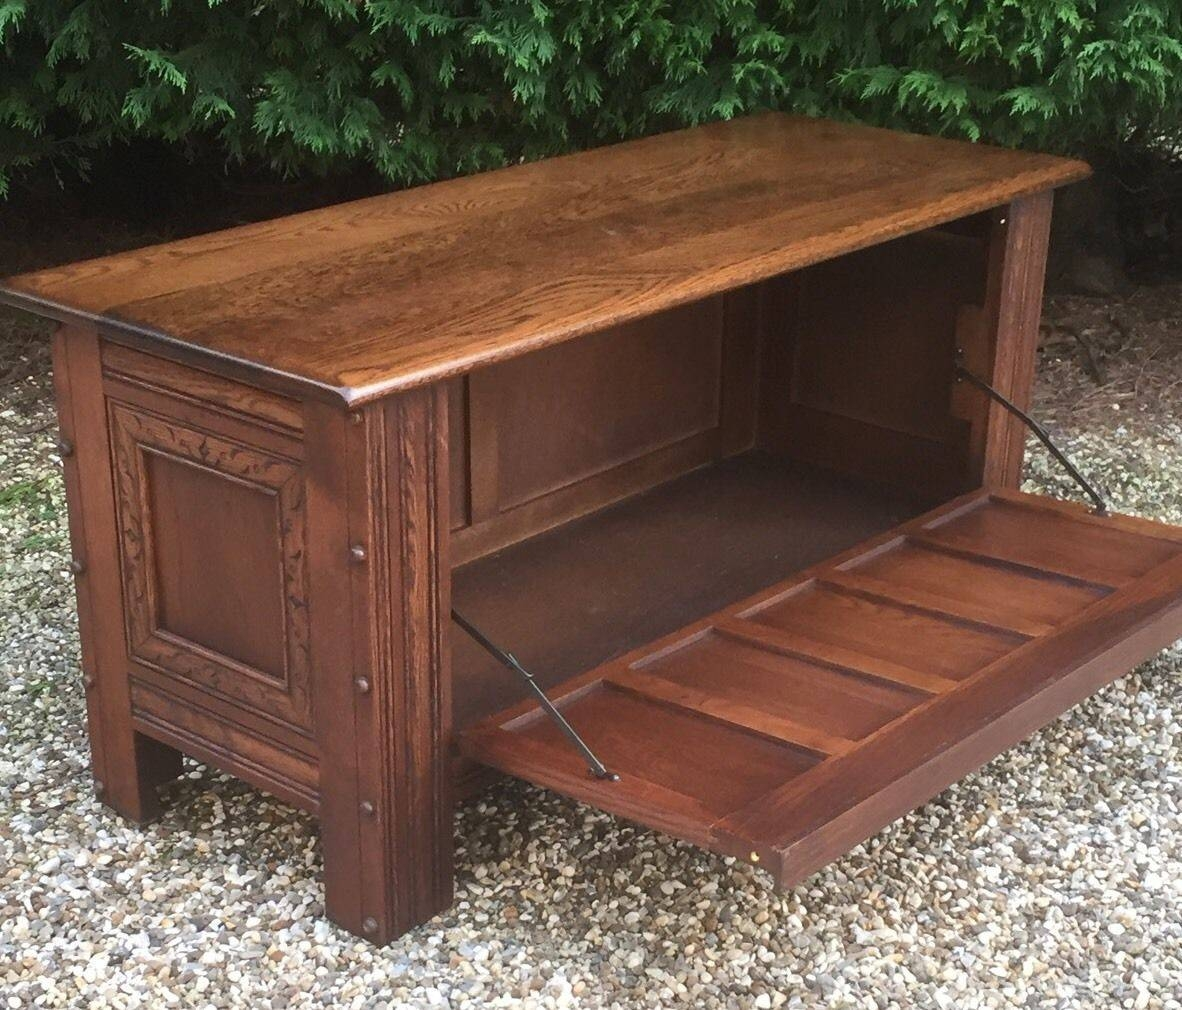 Superb Carved Oak Old Charm Rug Toy Chest/blanket Box/coffee Table pertaining to Blanket Box Coffee Tables (Image 26 of 30)